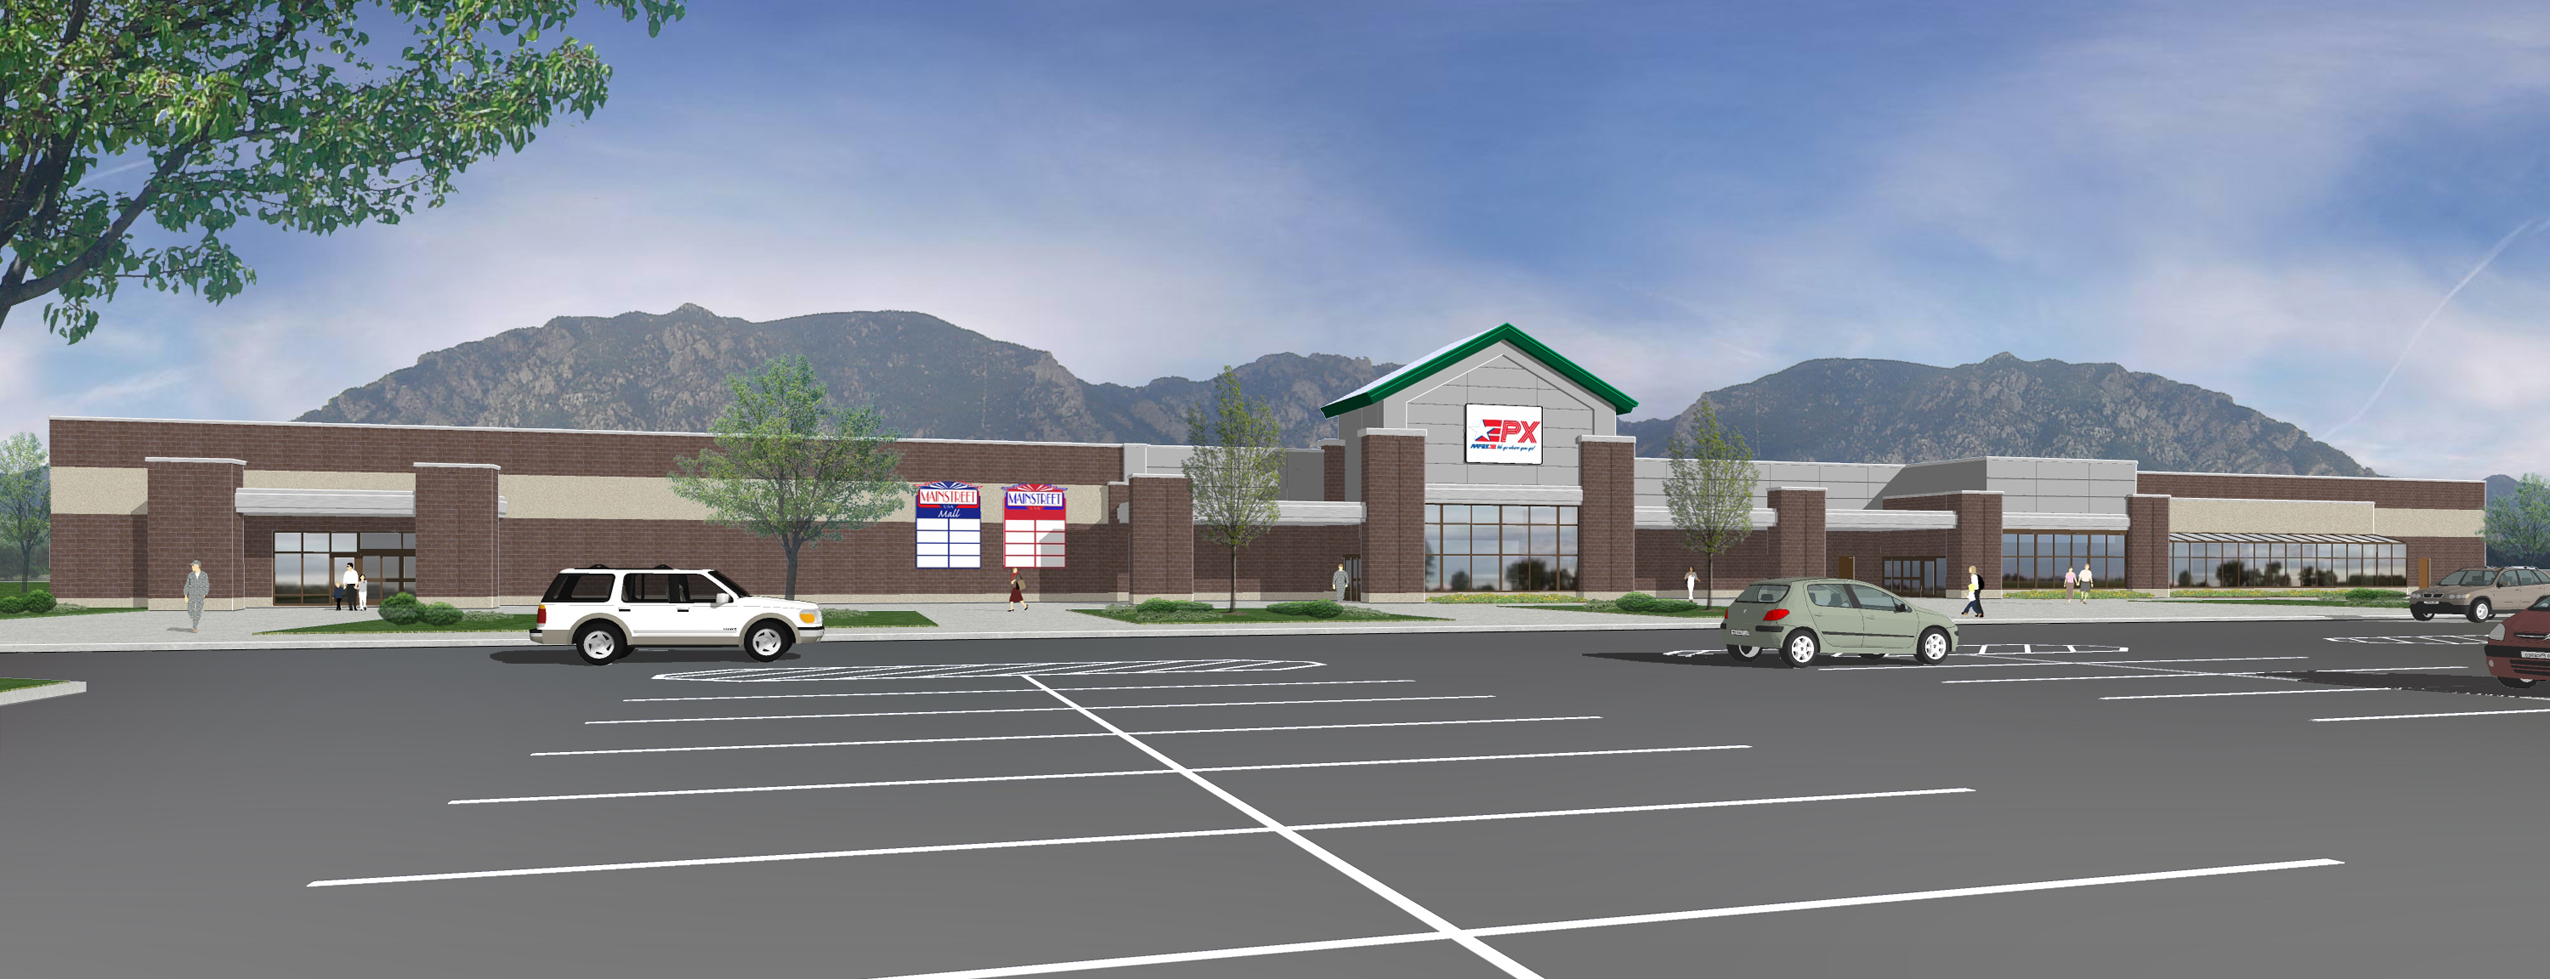 Hanlon Engineering Military Commissary Exterior Rendering